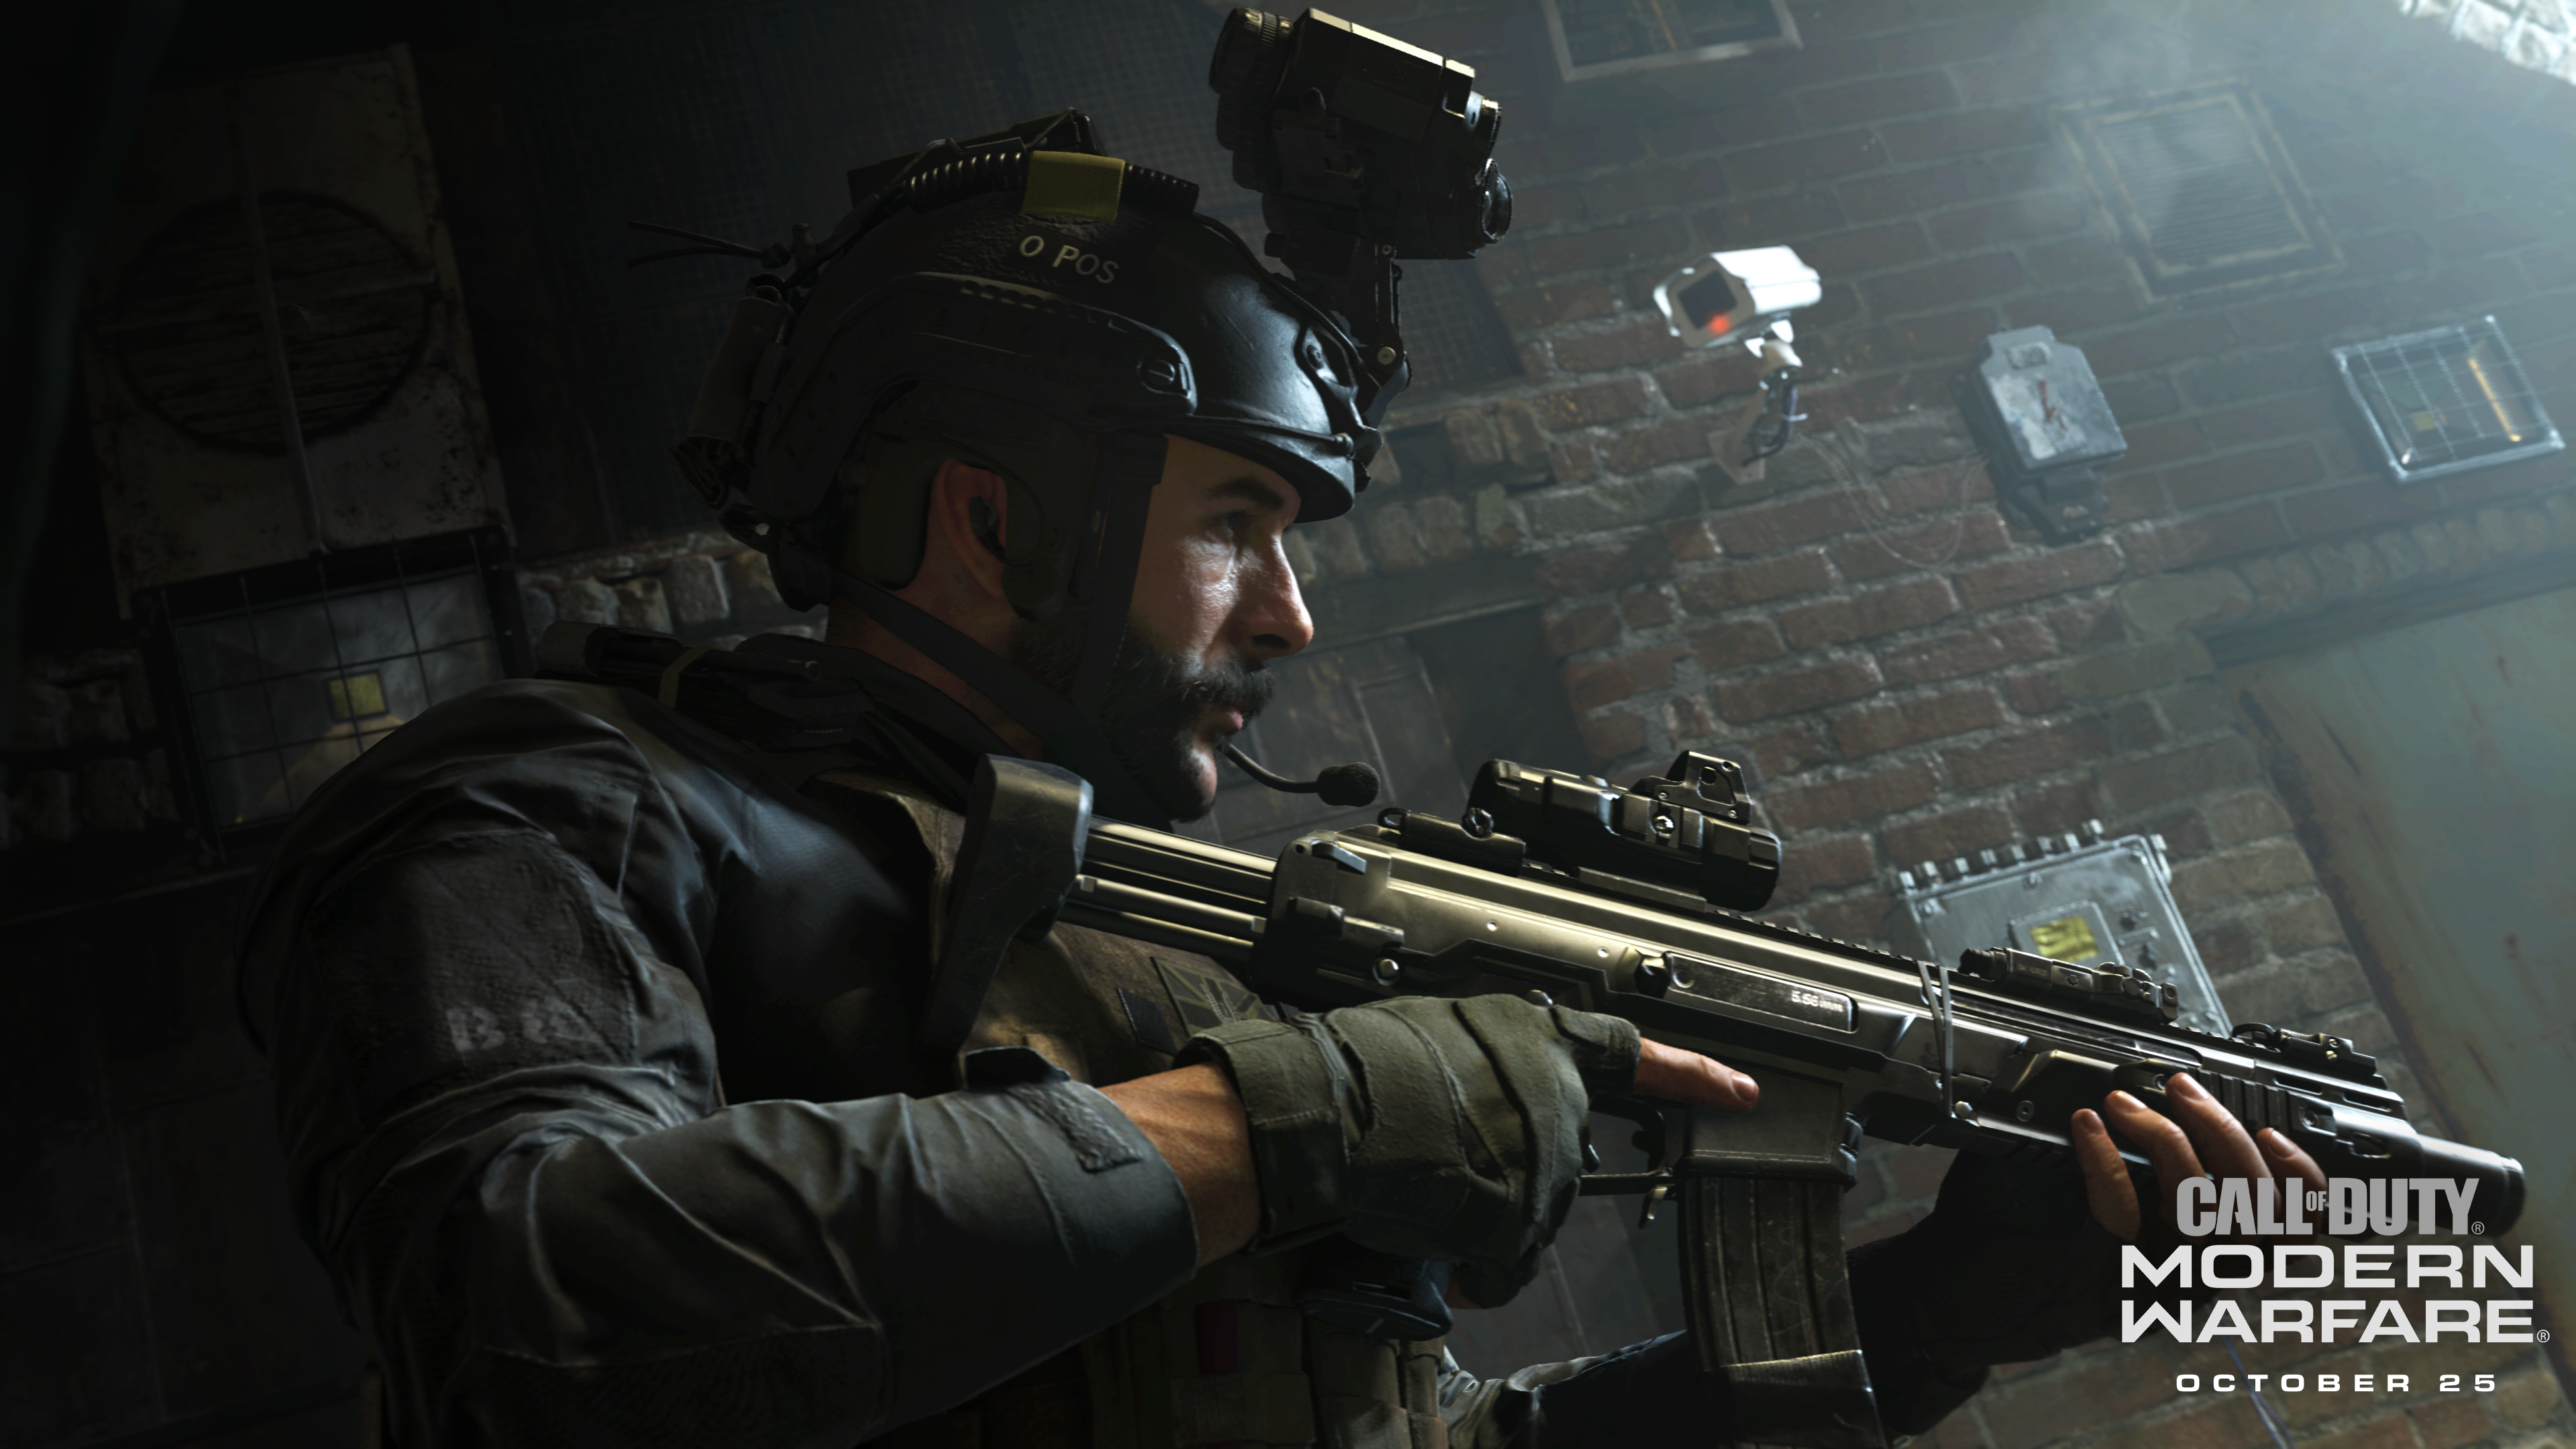 Call of Duty: Modern Warfare is a tense and daring reboot of